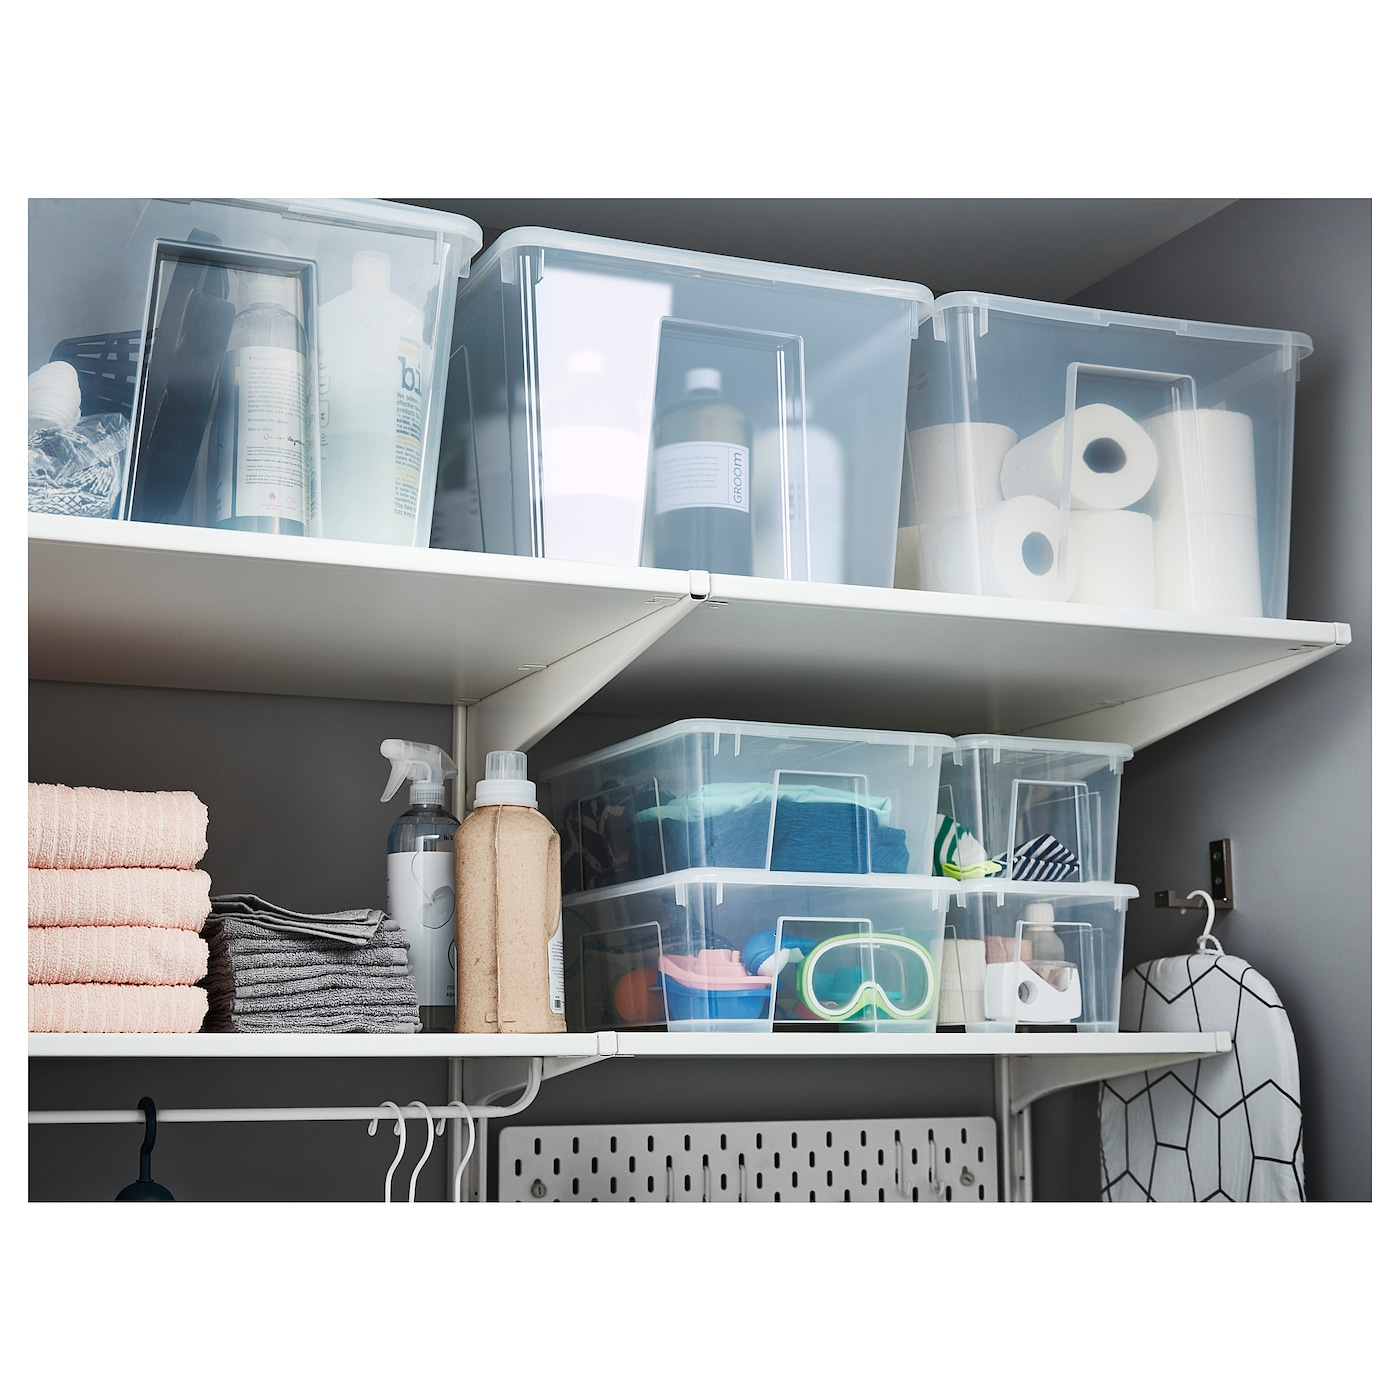 IKEA SAMLA box Perfect for sports equipment, gardening tools or laundry and cleaning accessories.